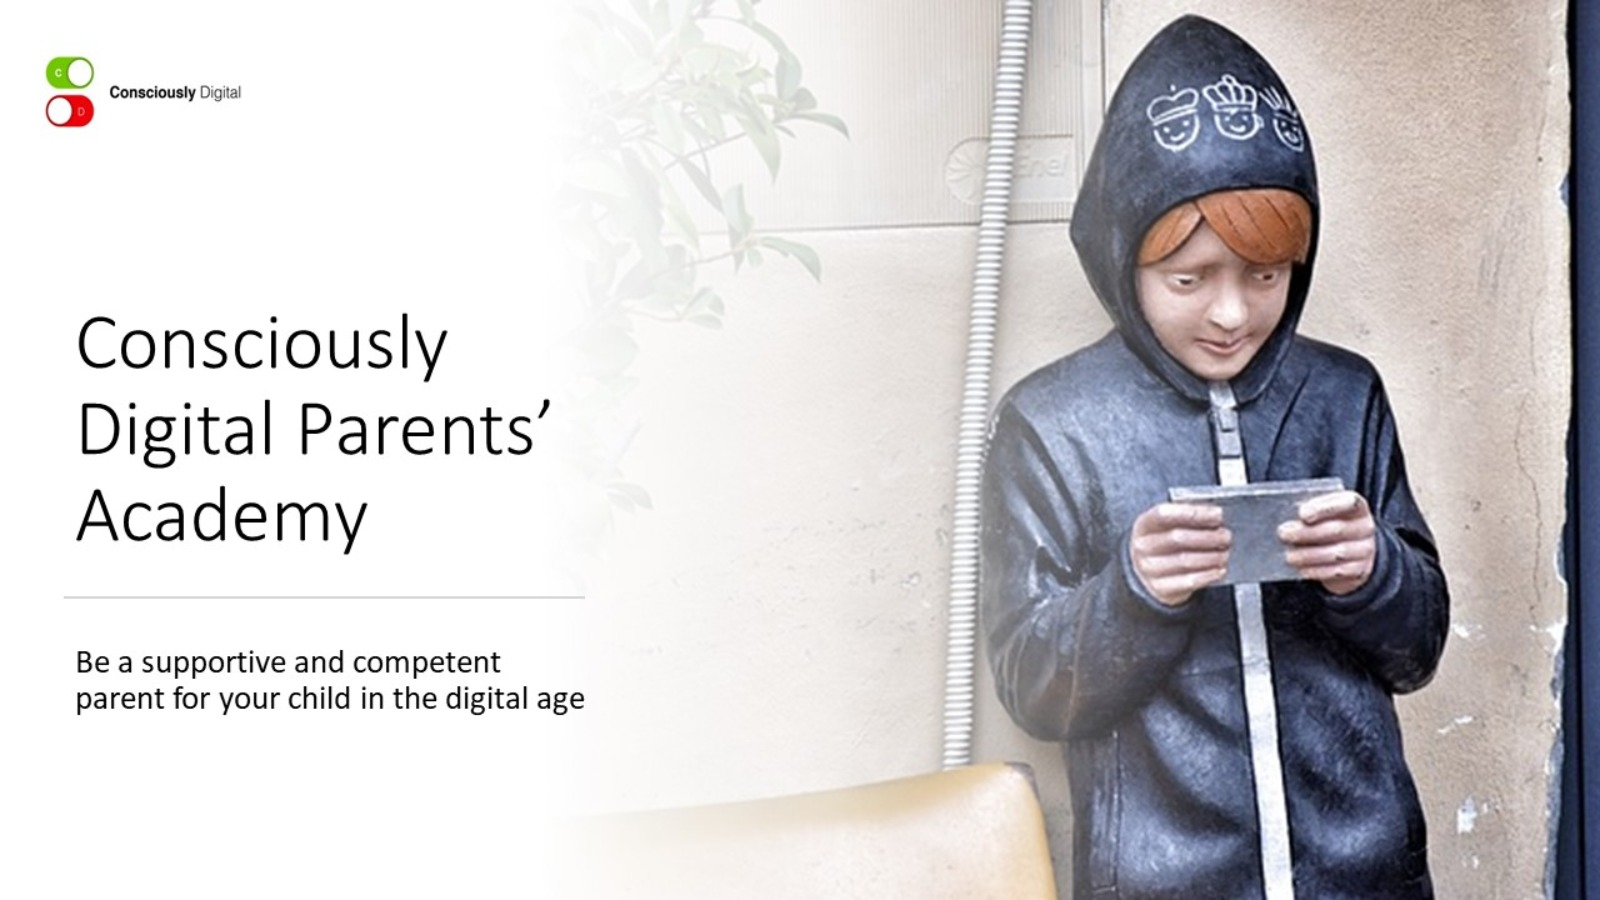 Consciously Digital Parents' Academy